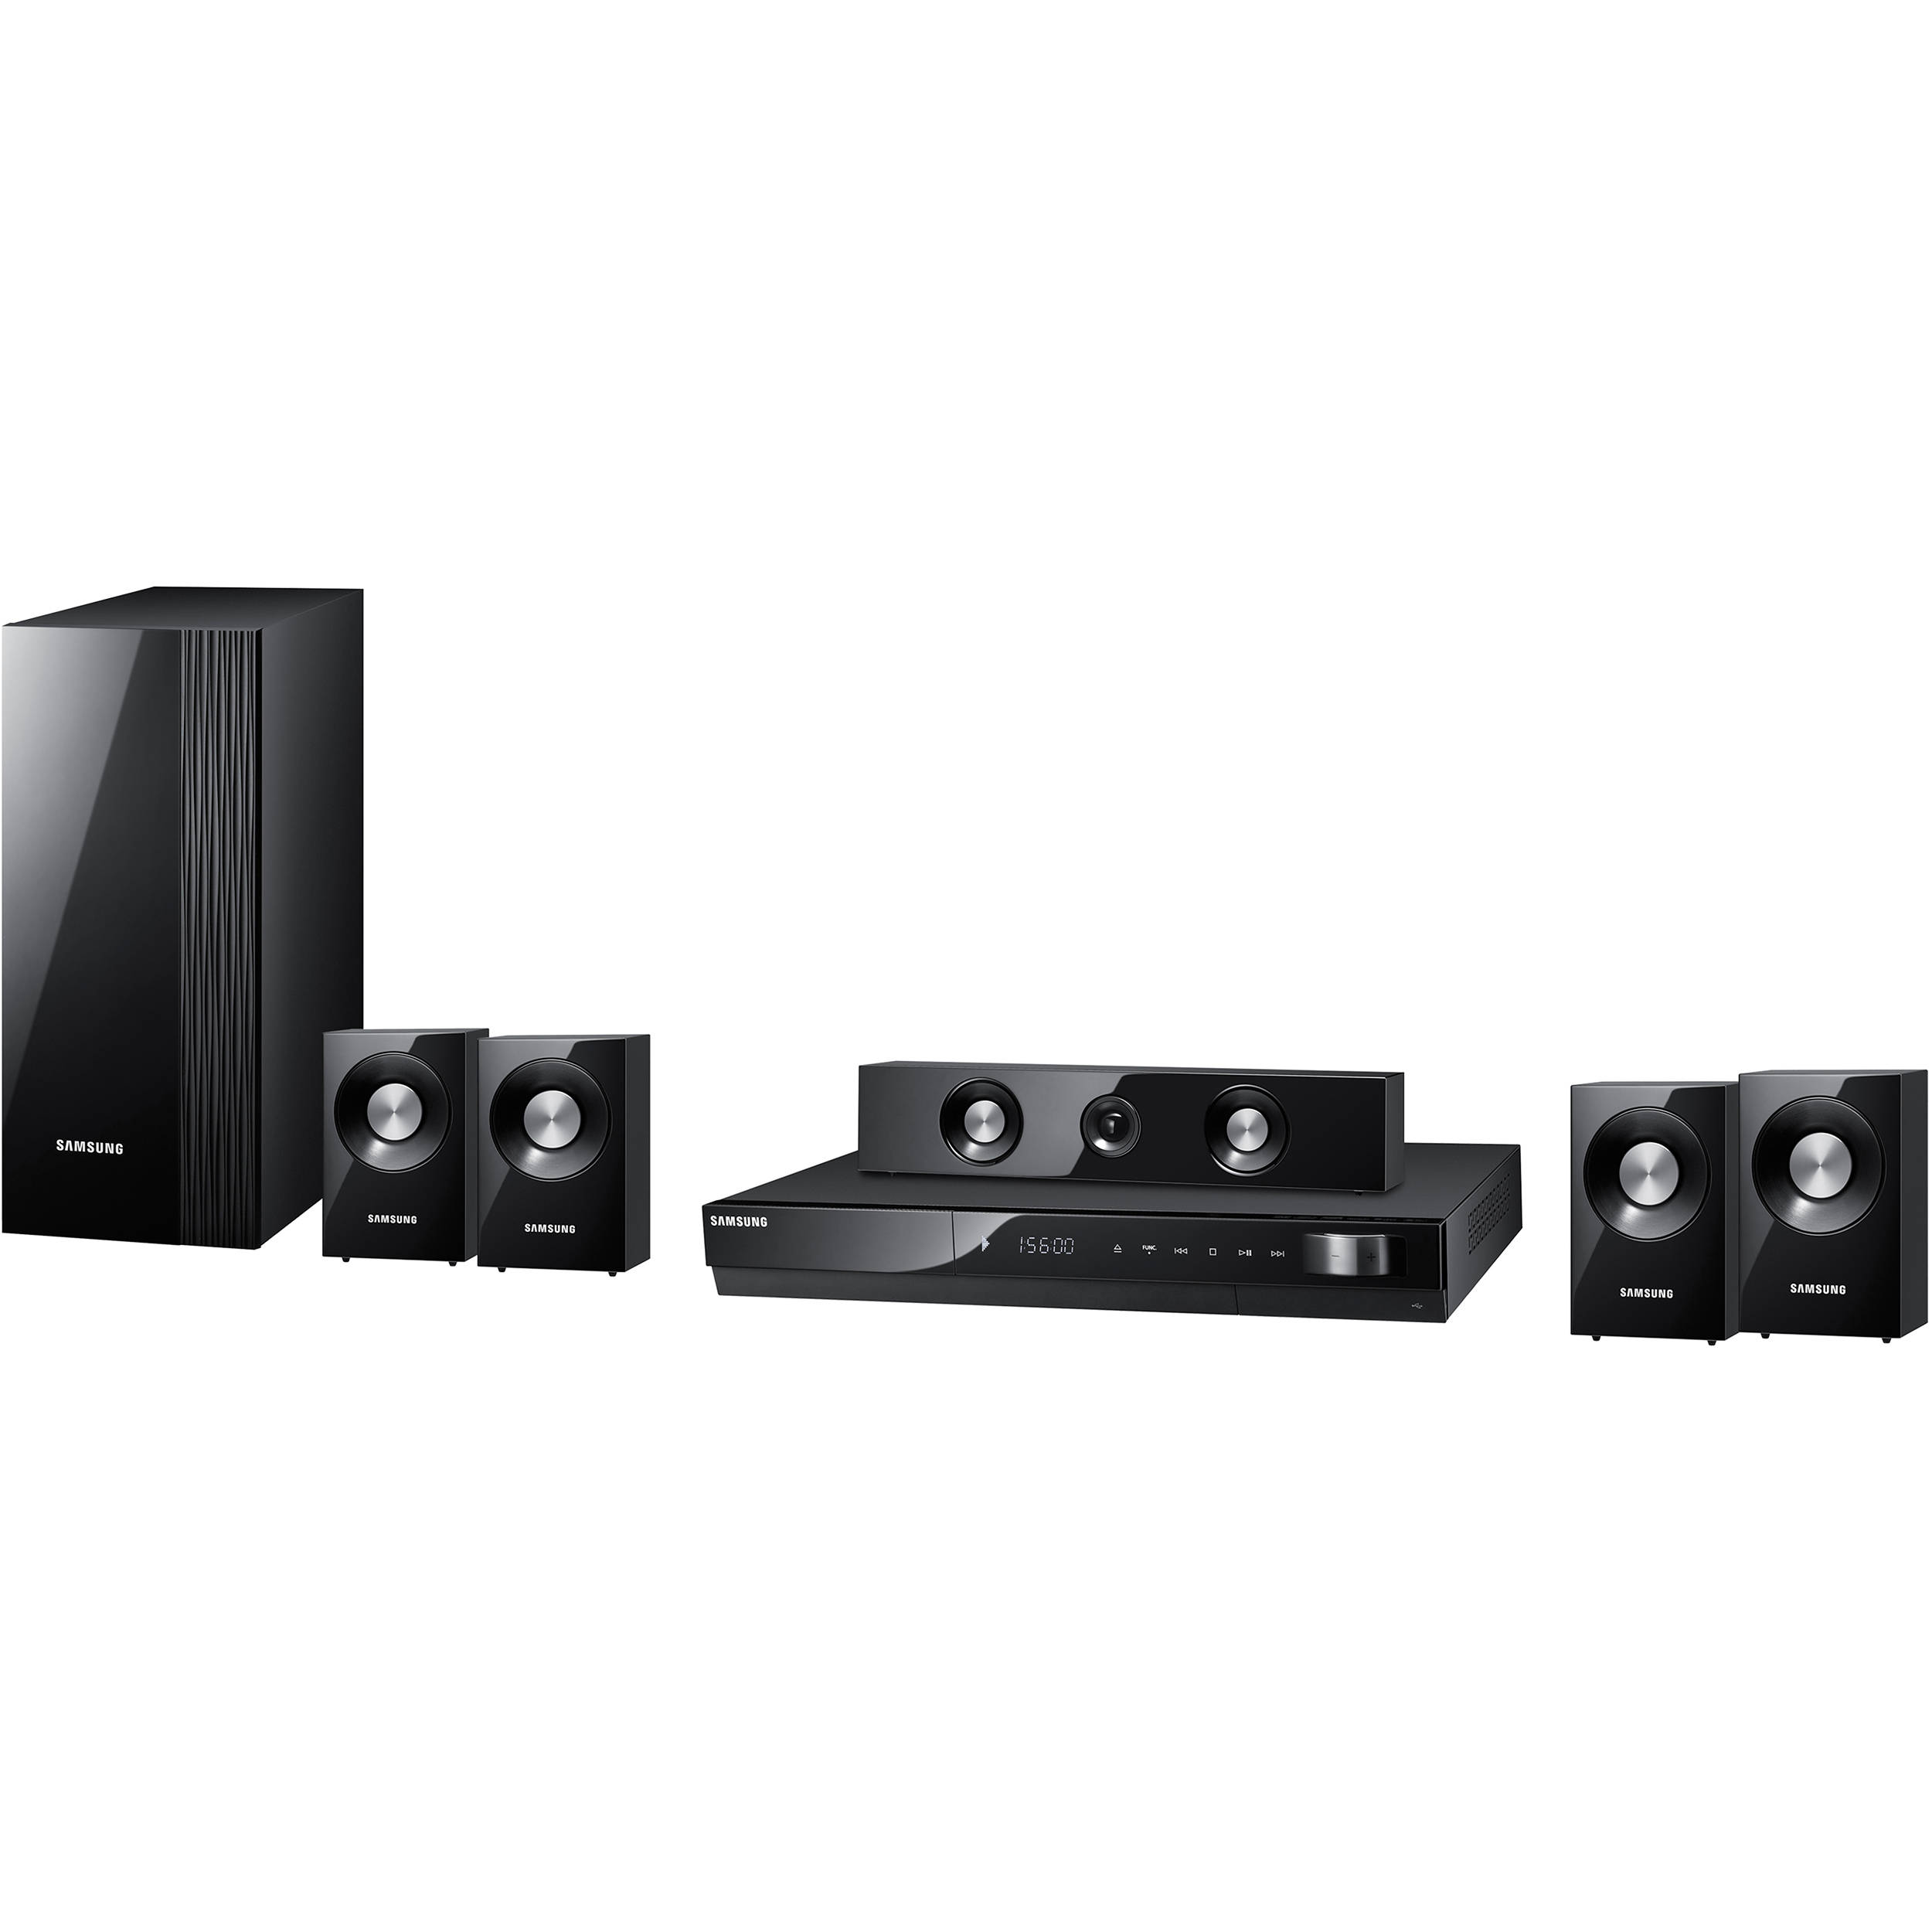 Samsung HT-C550 5 1 Channel Home Theater System